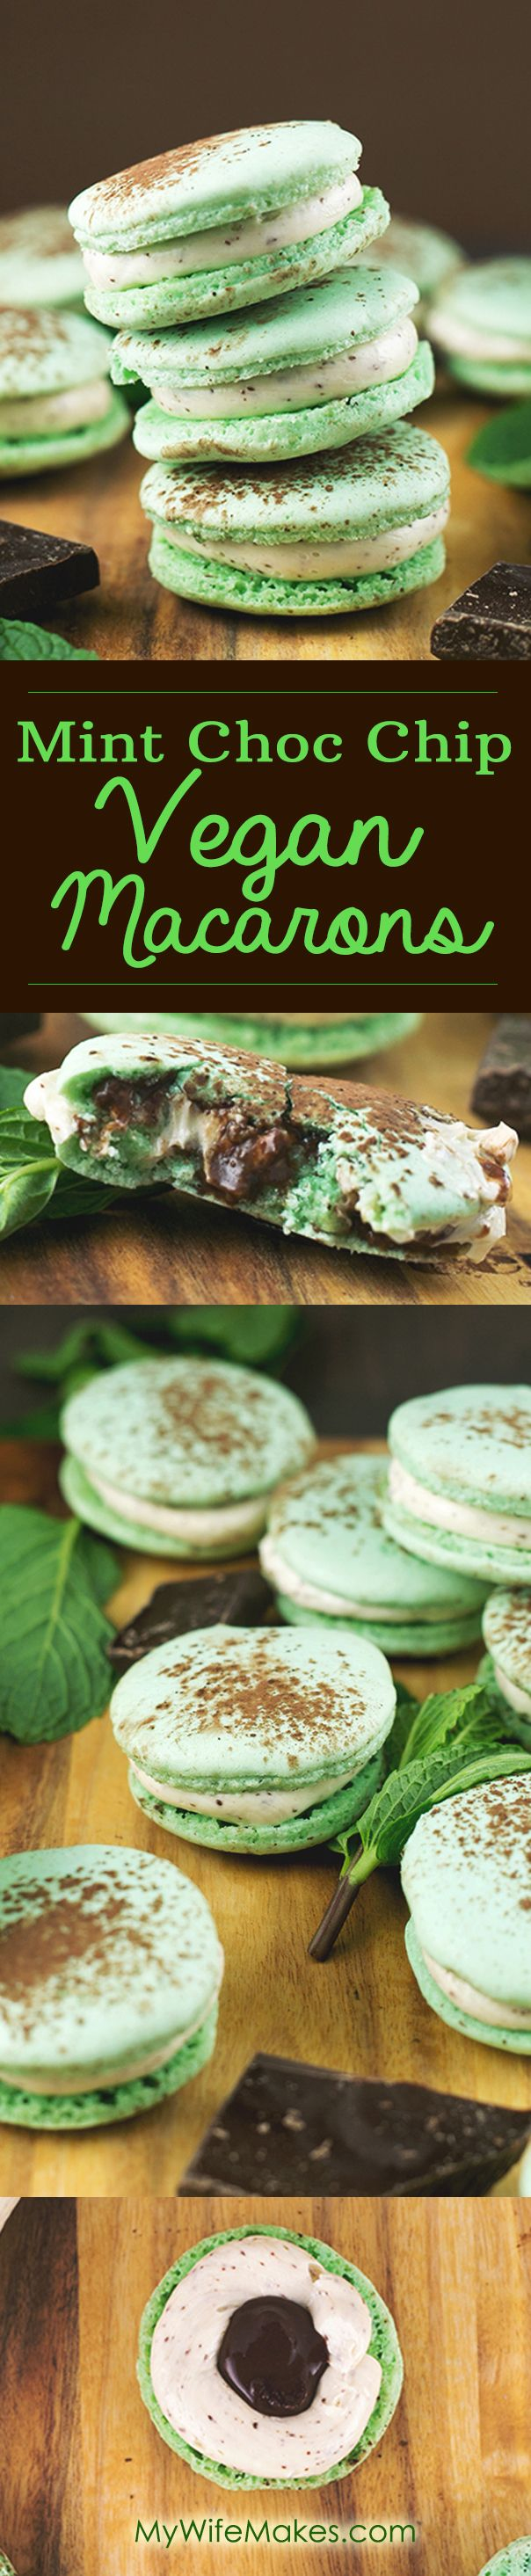 Mint Chocolate Chip Vegan Macarons - Sweet, Minty, full of Chocolate and 100% delicious. Also a healthier alternative to 'normal' non-vegan macarons. #vegan #macarons